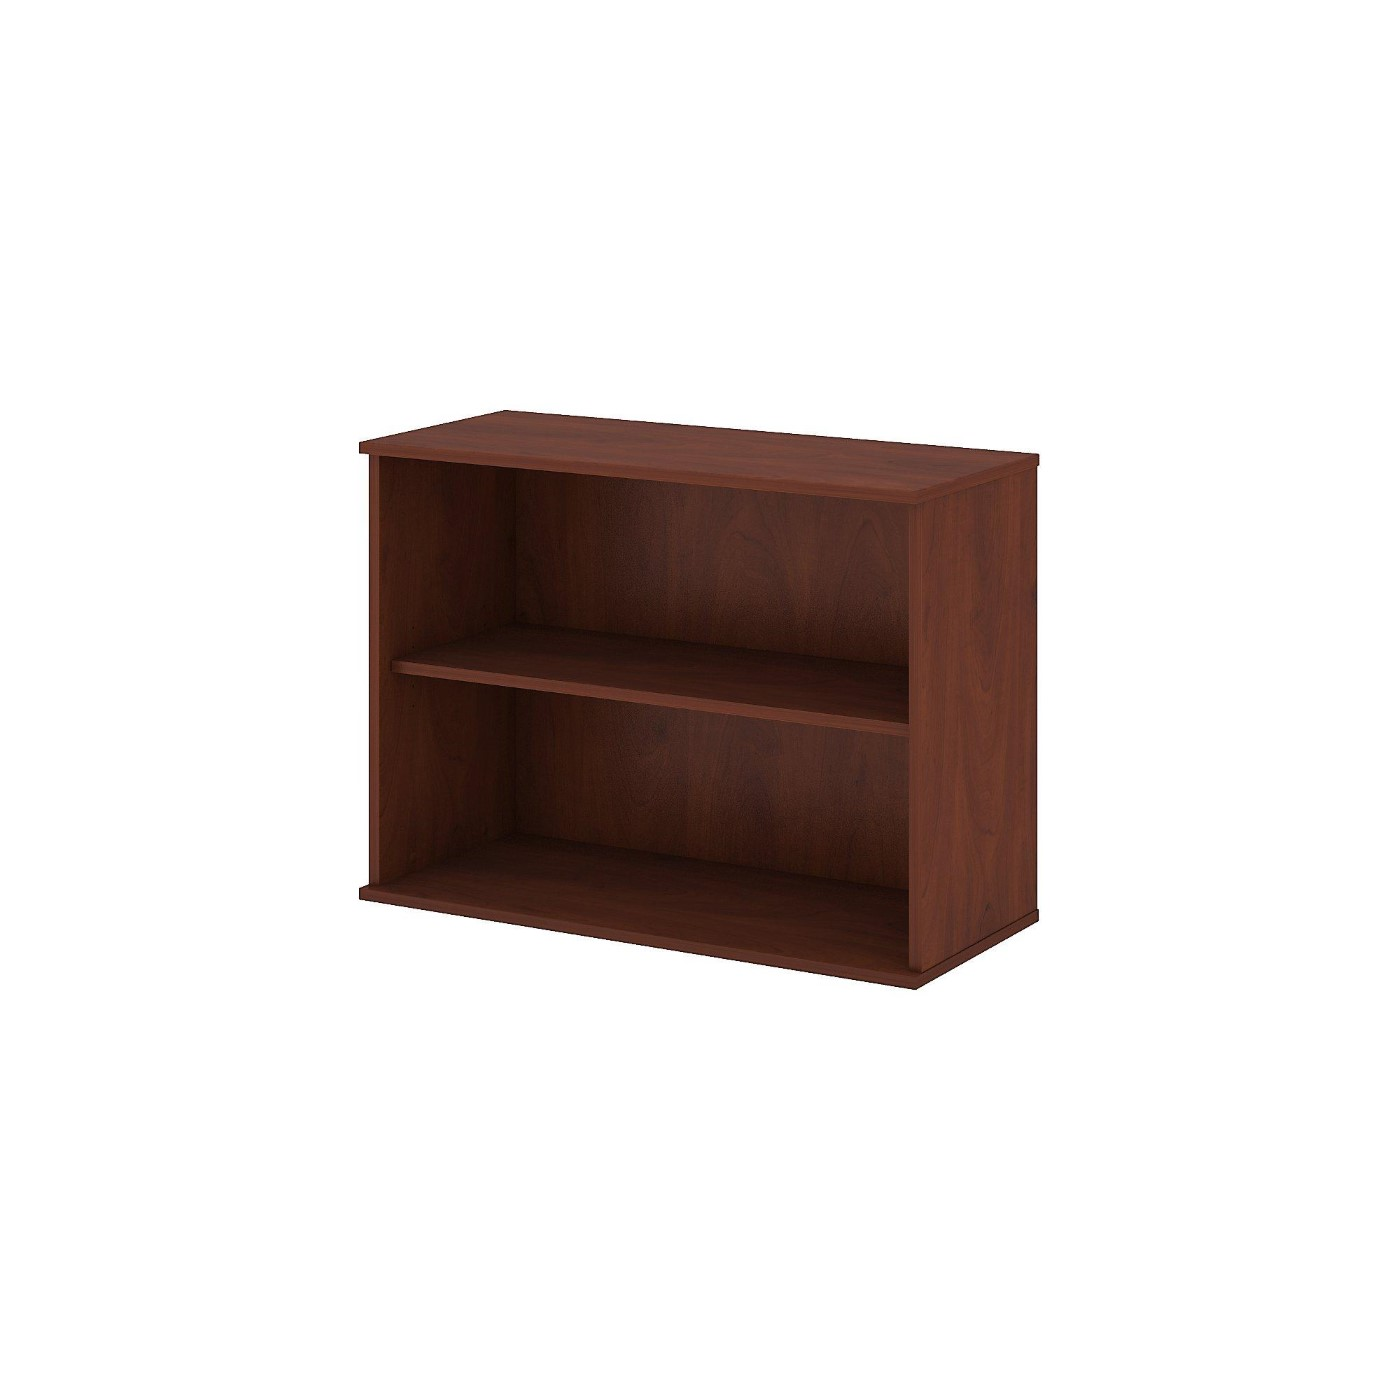 <font color=#c60><b>BUSH BUSINESS FURNITURE 30H 2 SHELF BOOKCASE. FREE SHIPPING</font></b></font></b>